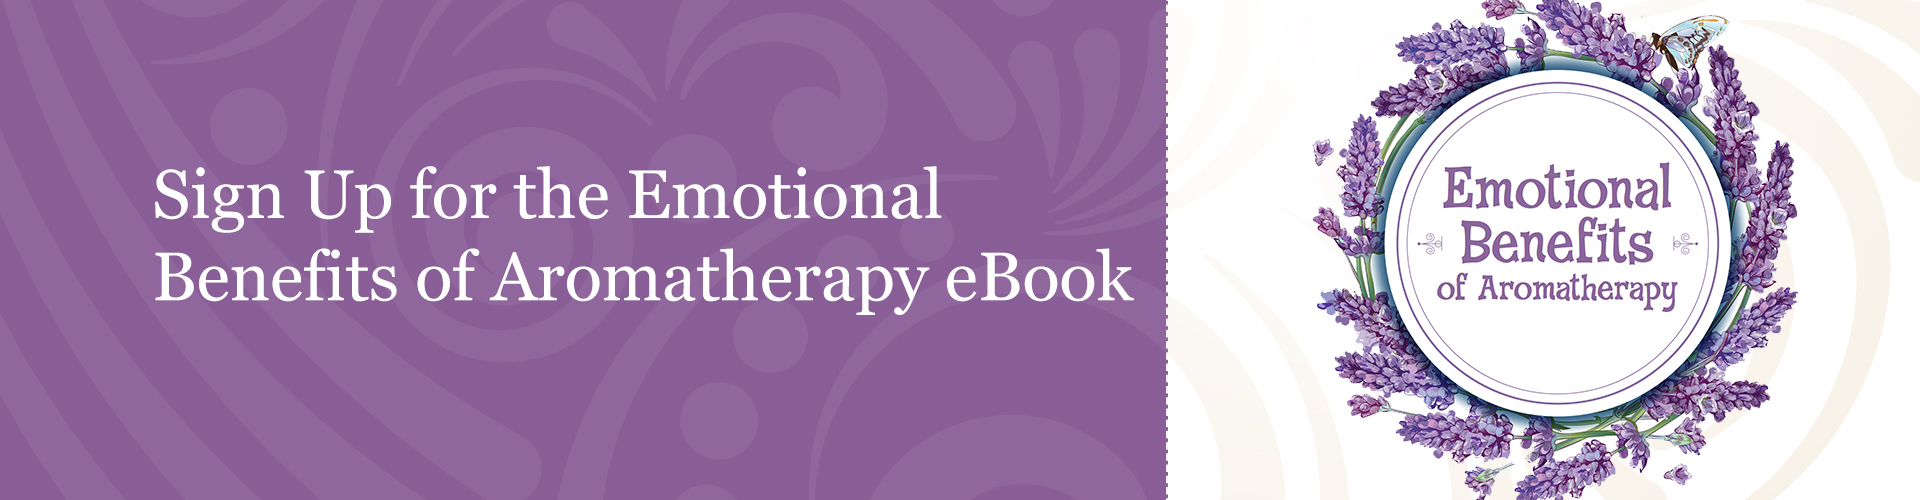 Emotionals Benefits of Aromathrapy sign up